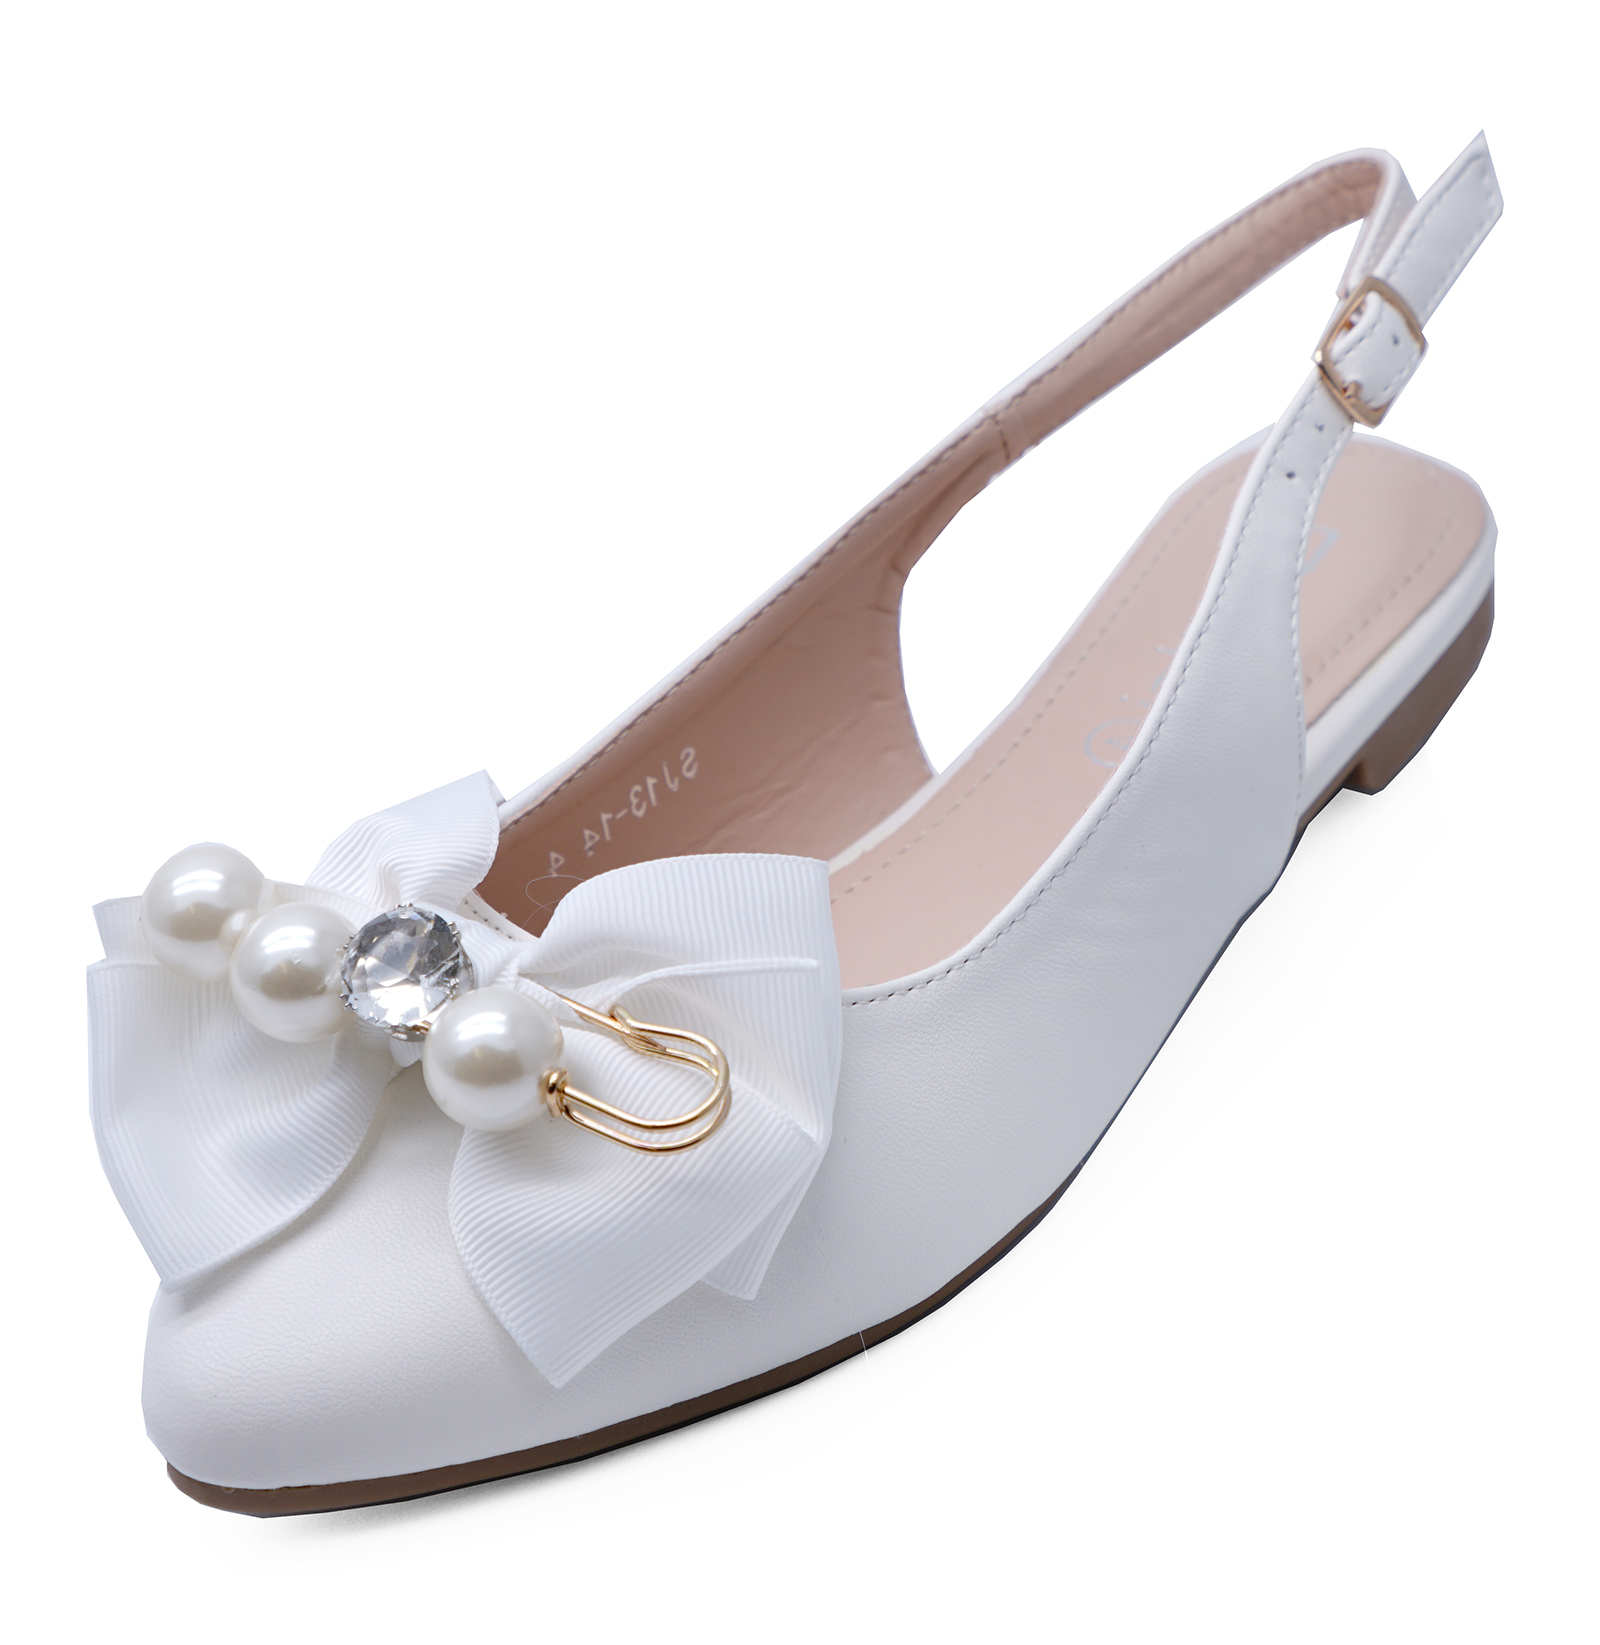 WOMENS-WHITE-SLIP-ON-SLINGBACK-FLAT-PUMPS-WEDDING-PARTY-COMFY-SHOES-SIZES-3-8 thumbnail 6